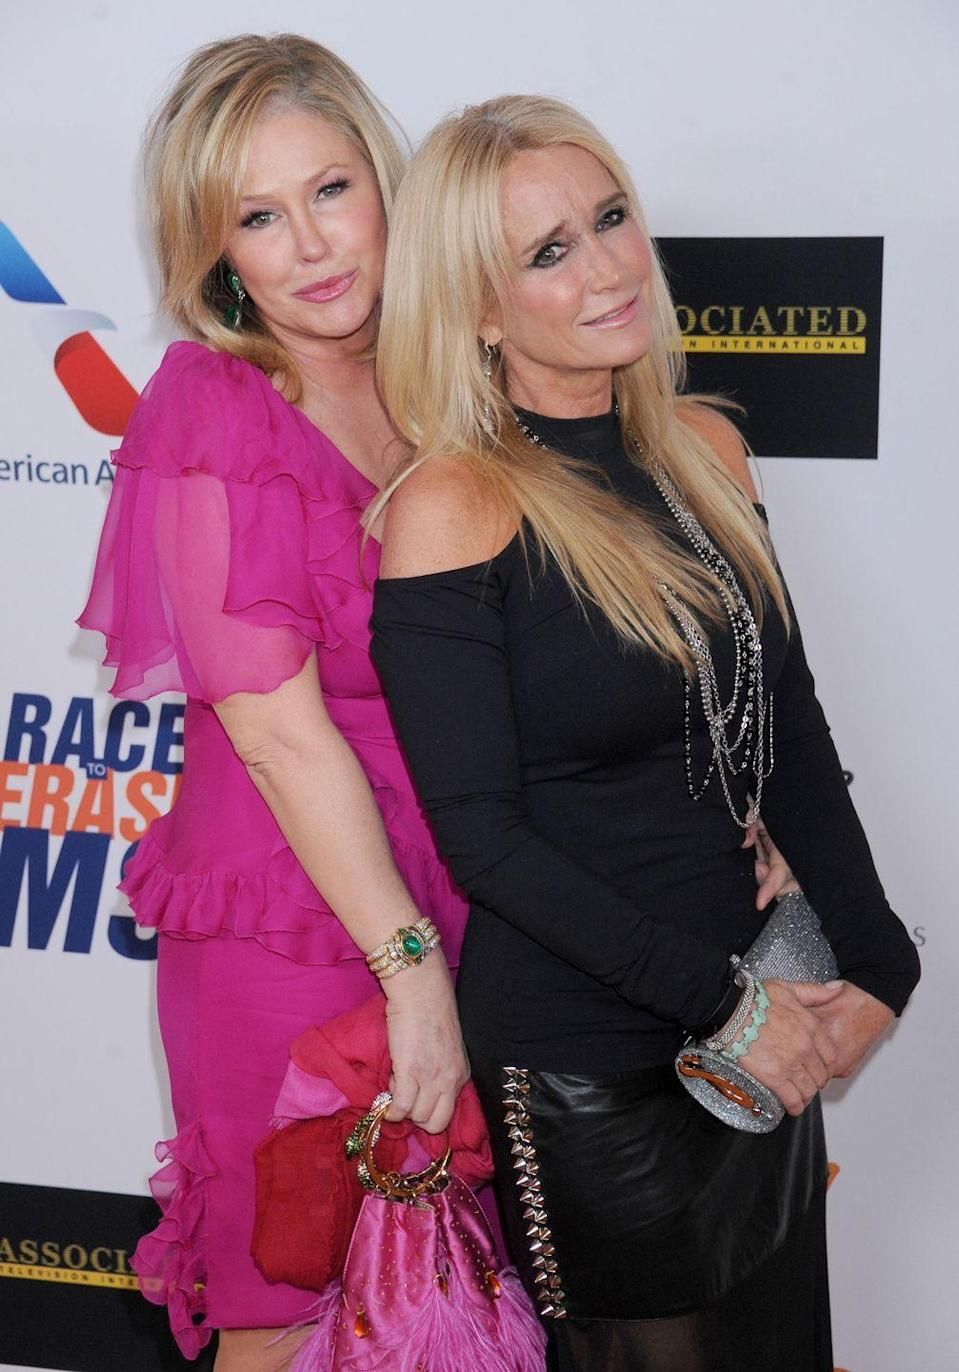 <p>Kathy Hilton is the oldest of the Richards sisters (their third sister is <em>Real Housewives of Beverly Hills </em>star Kyle Richards) and we see the most similarities between her and former child actress, Kim. From their nose shape to their coloring, the two are nearly identical despite being six years apart. </p>